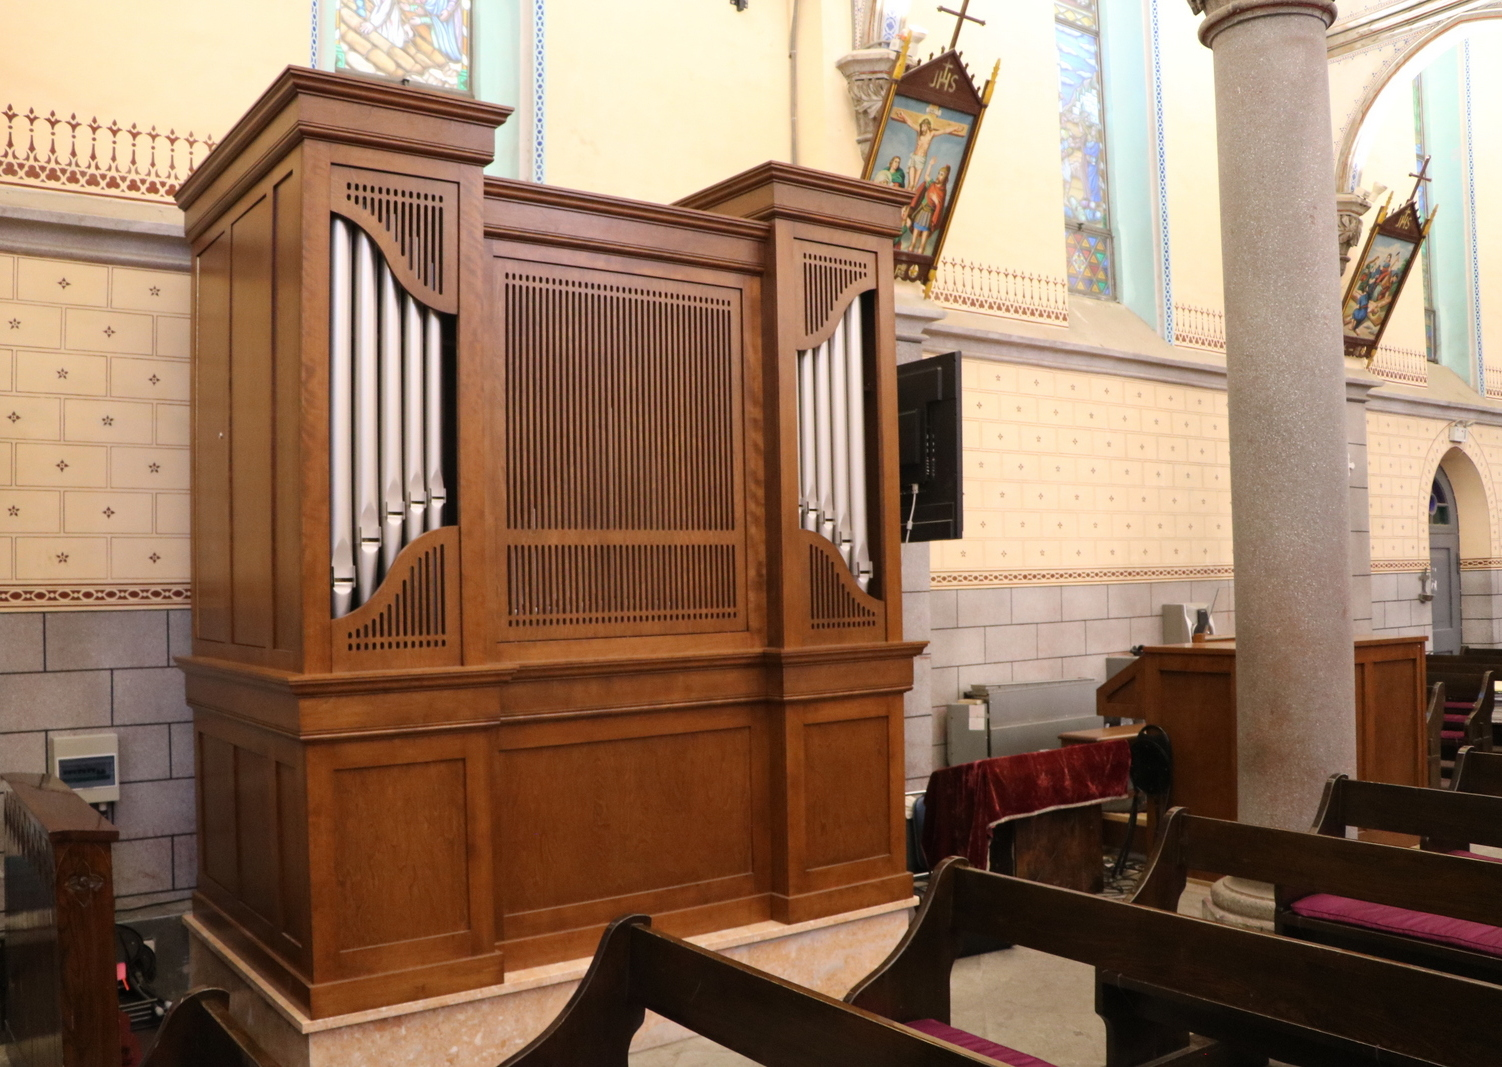 Seven-rank Inspiration Organ, West Church (Our Lady of Mount Carmel) in Beijing